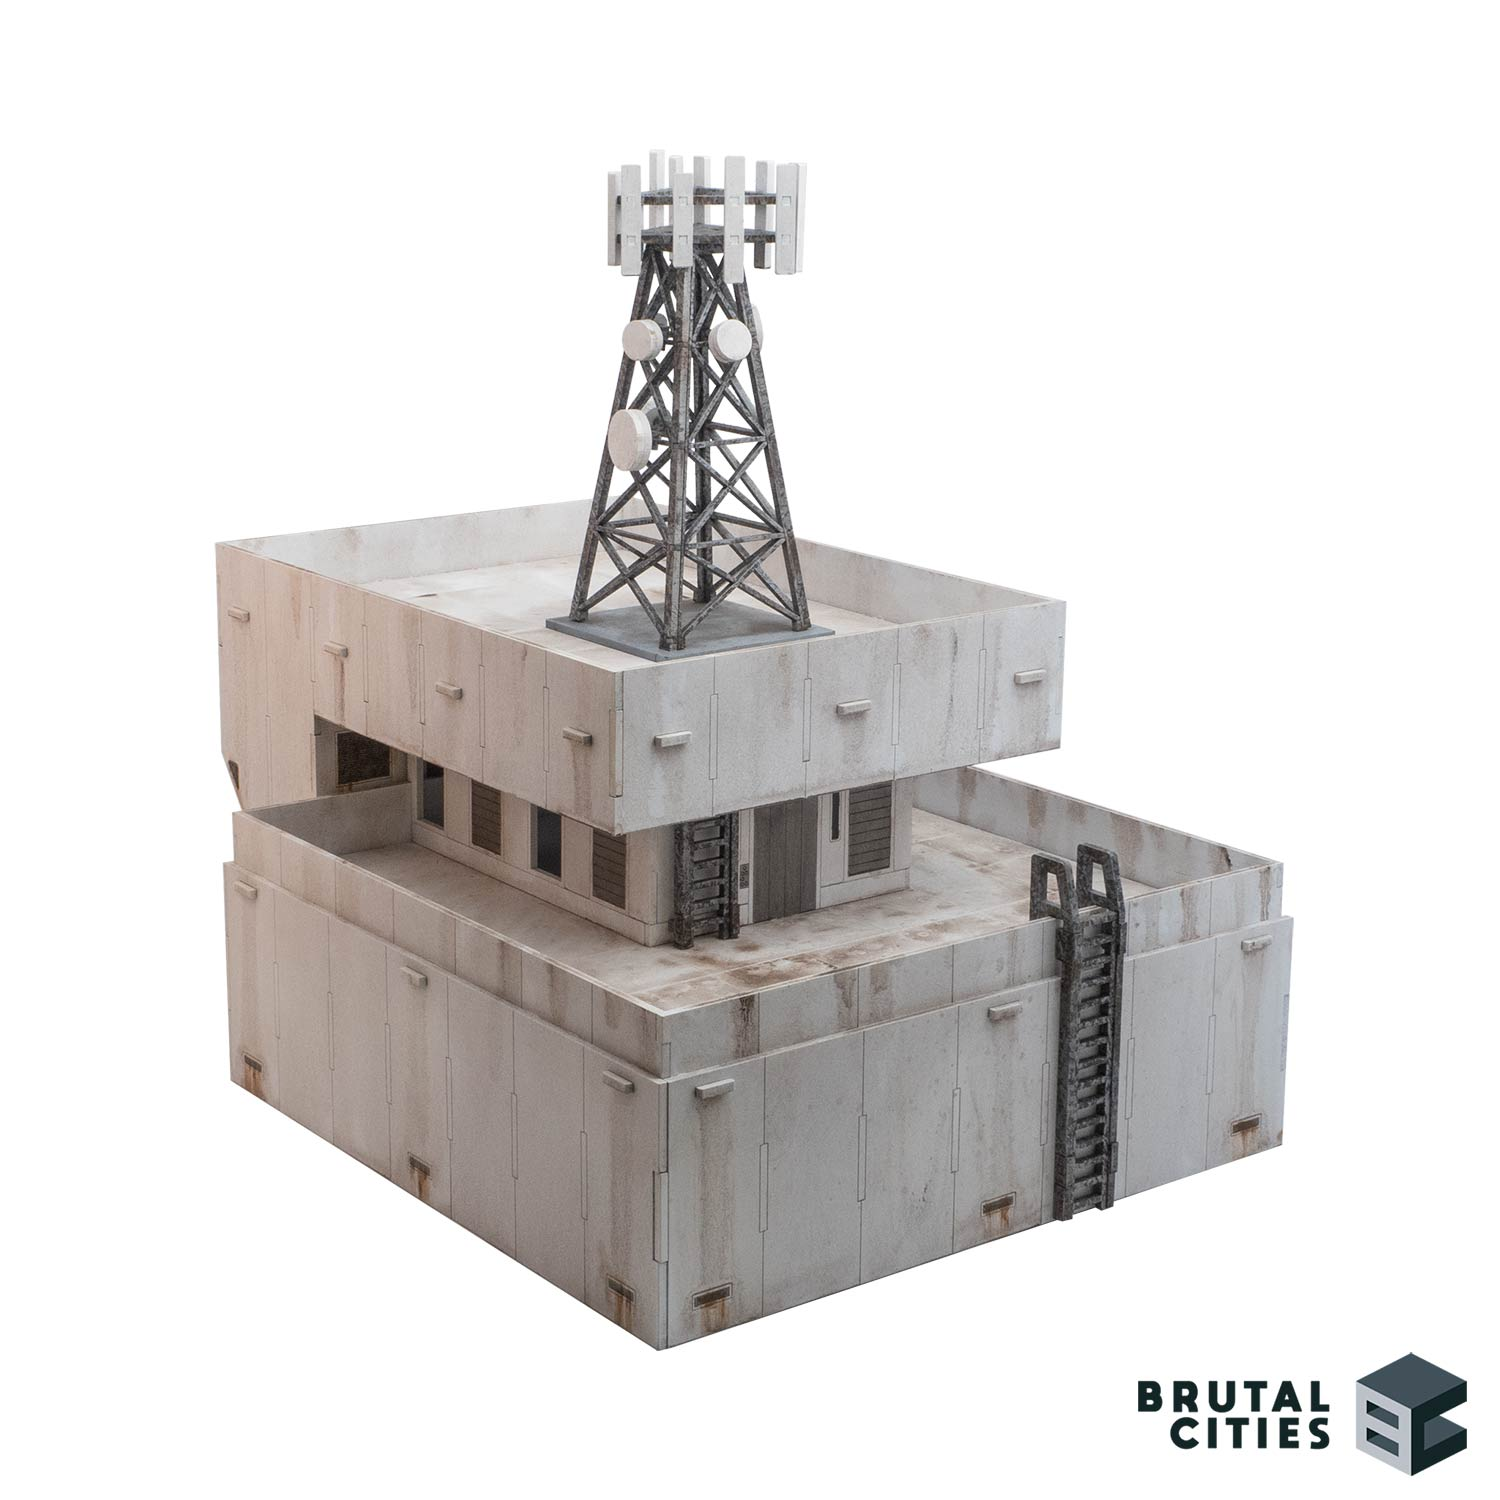 Futuristic comms tower and roof module